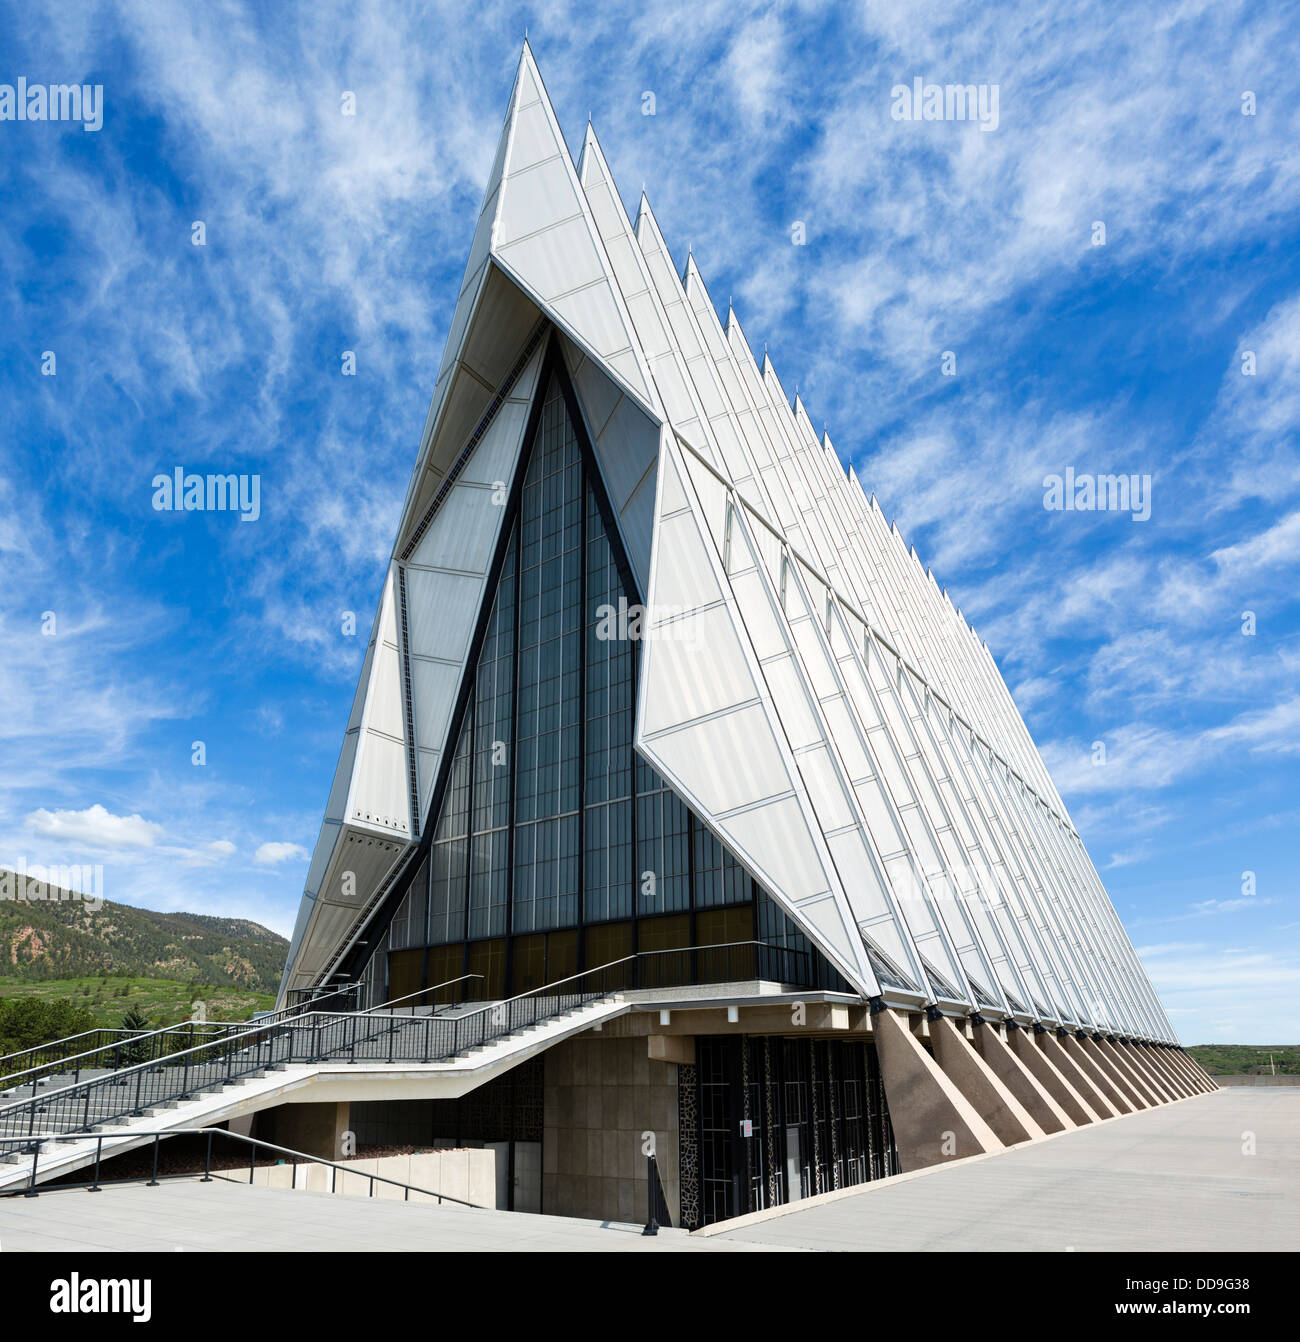 The Cadet Chapel at the United States Air Force Academy, Colorado Springs, Colorado, USA - Stock Image